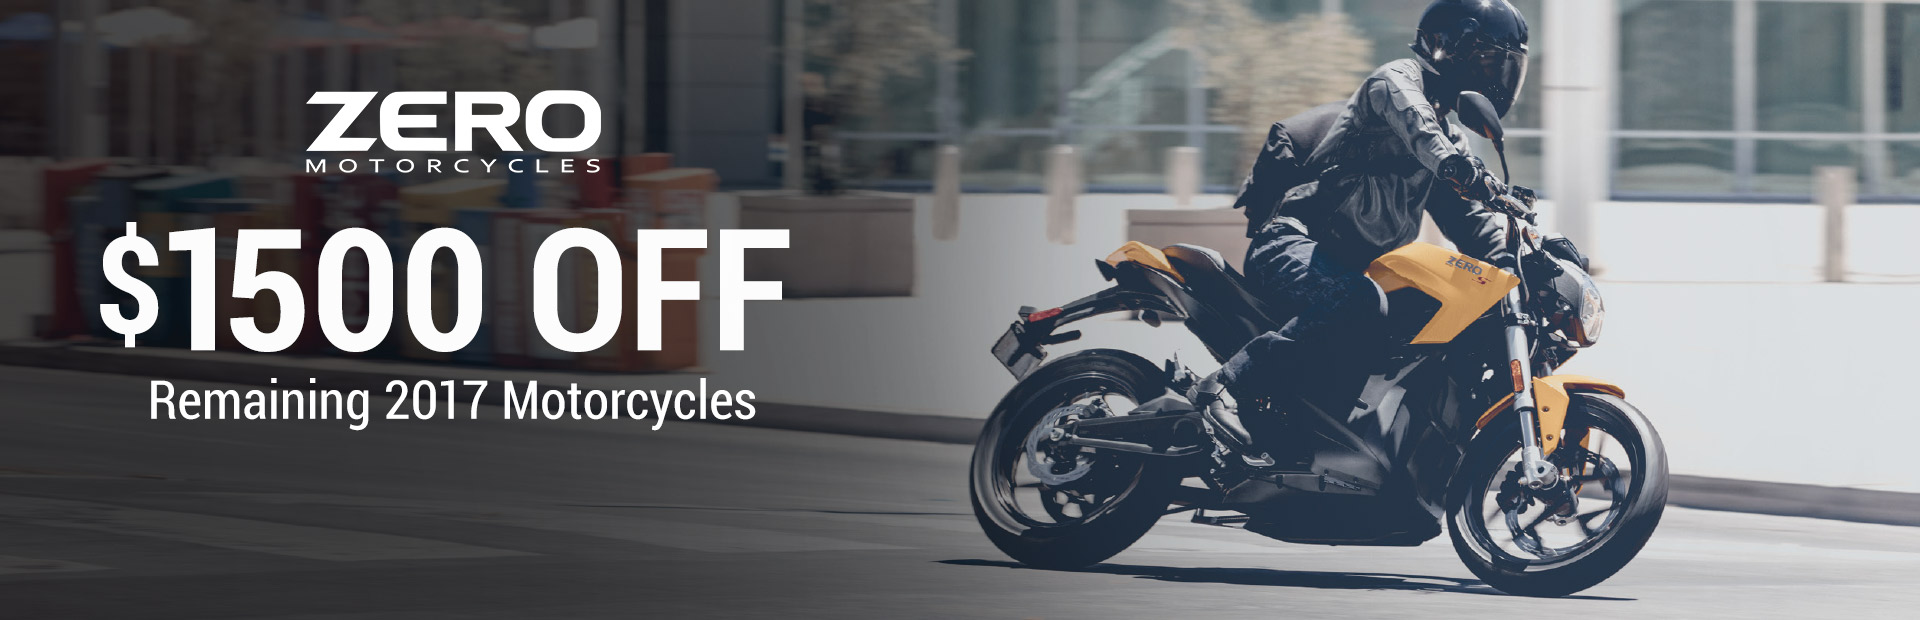 ZERO™: $1500 Off Remaining 2017 Motorcycles